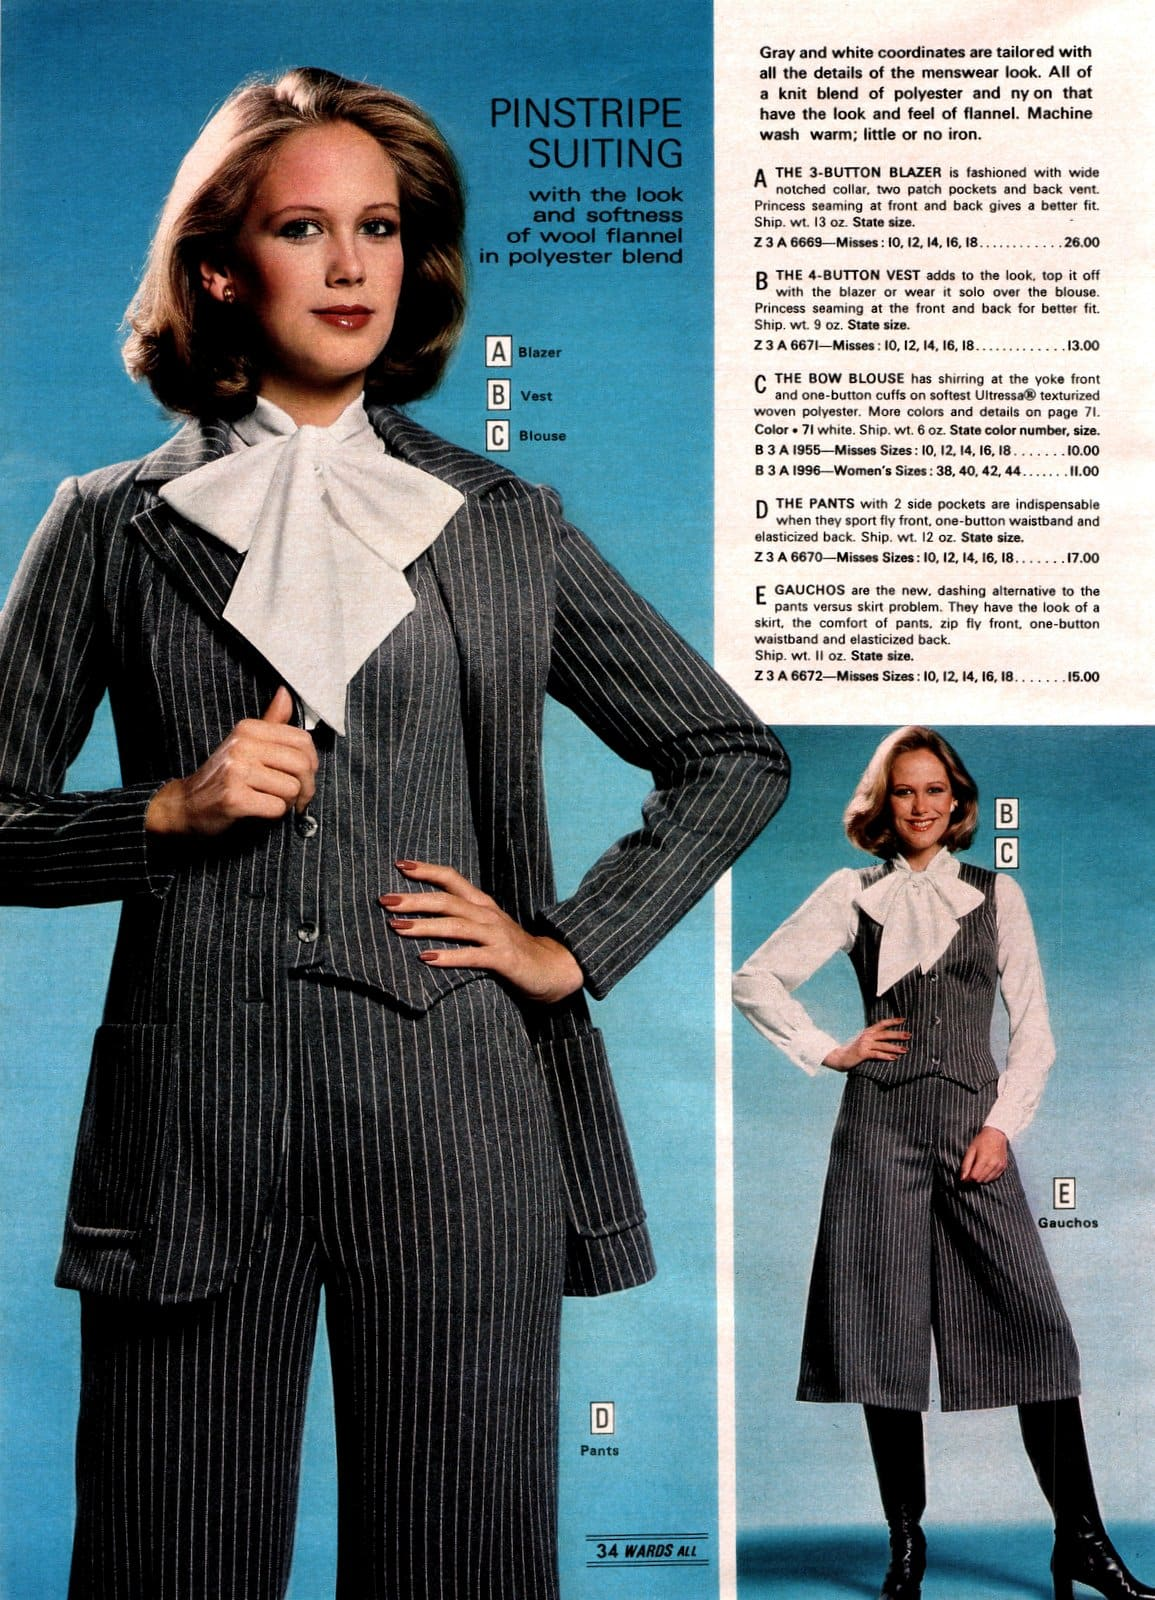 Womenswear - Vintage suits from the 1970s